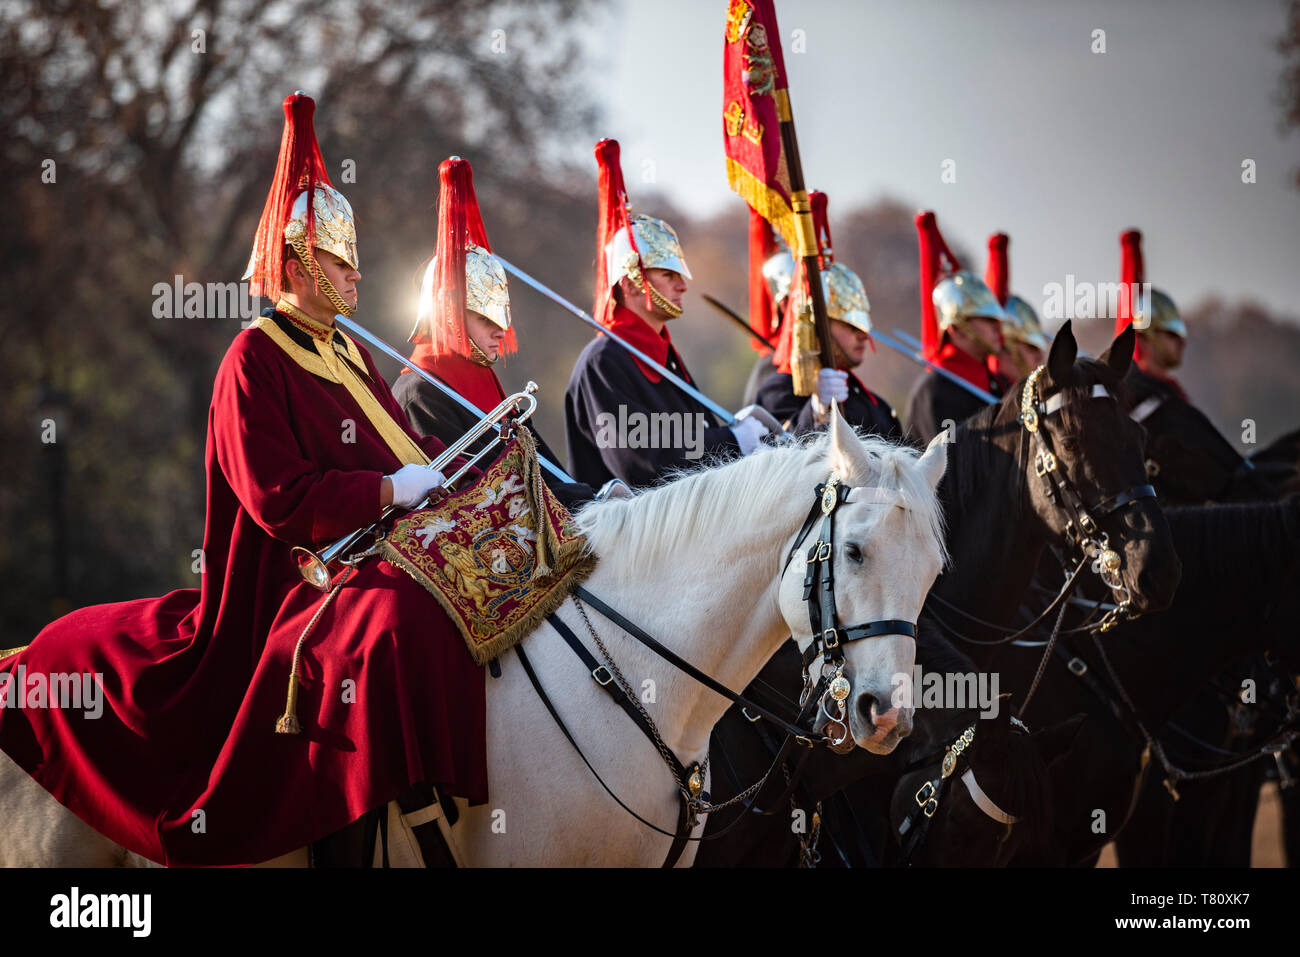 Changing of the Guard, Horse Guards, Westminster, London, England, United Kingdom, Europe Stock Photo